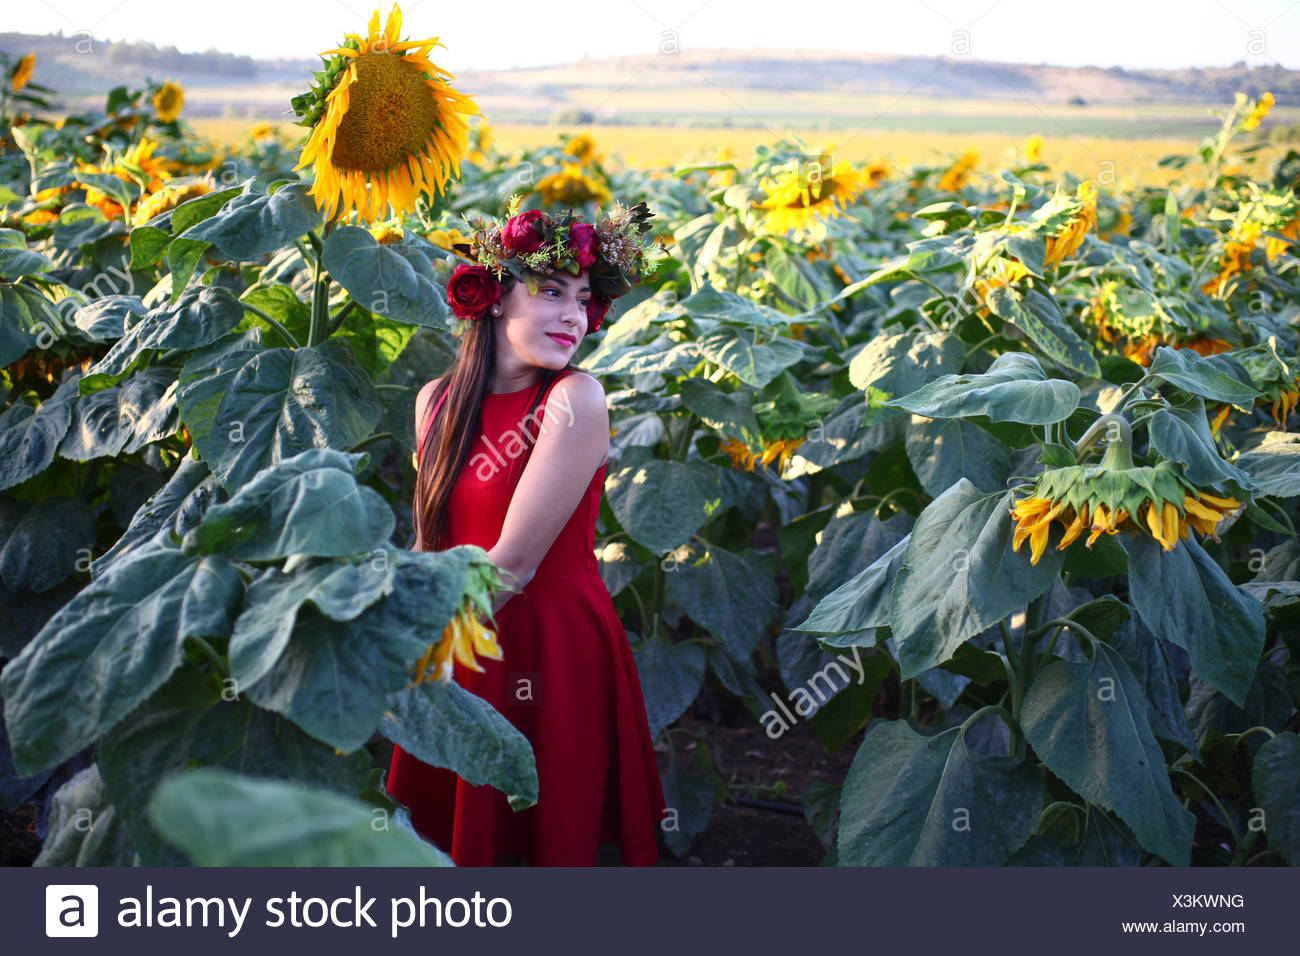 Preteen with wreath in a field of sunflowers - Stock Image